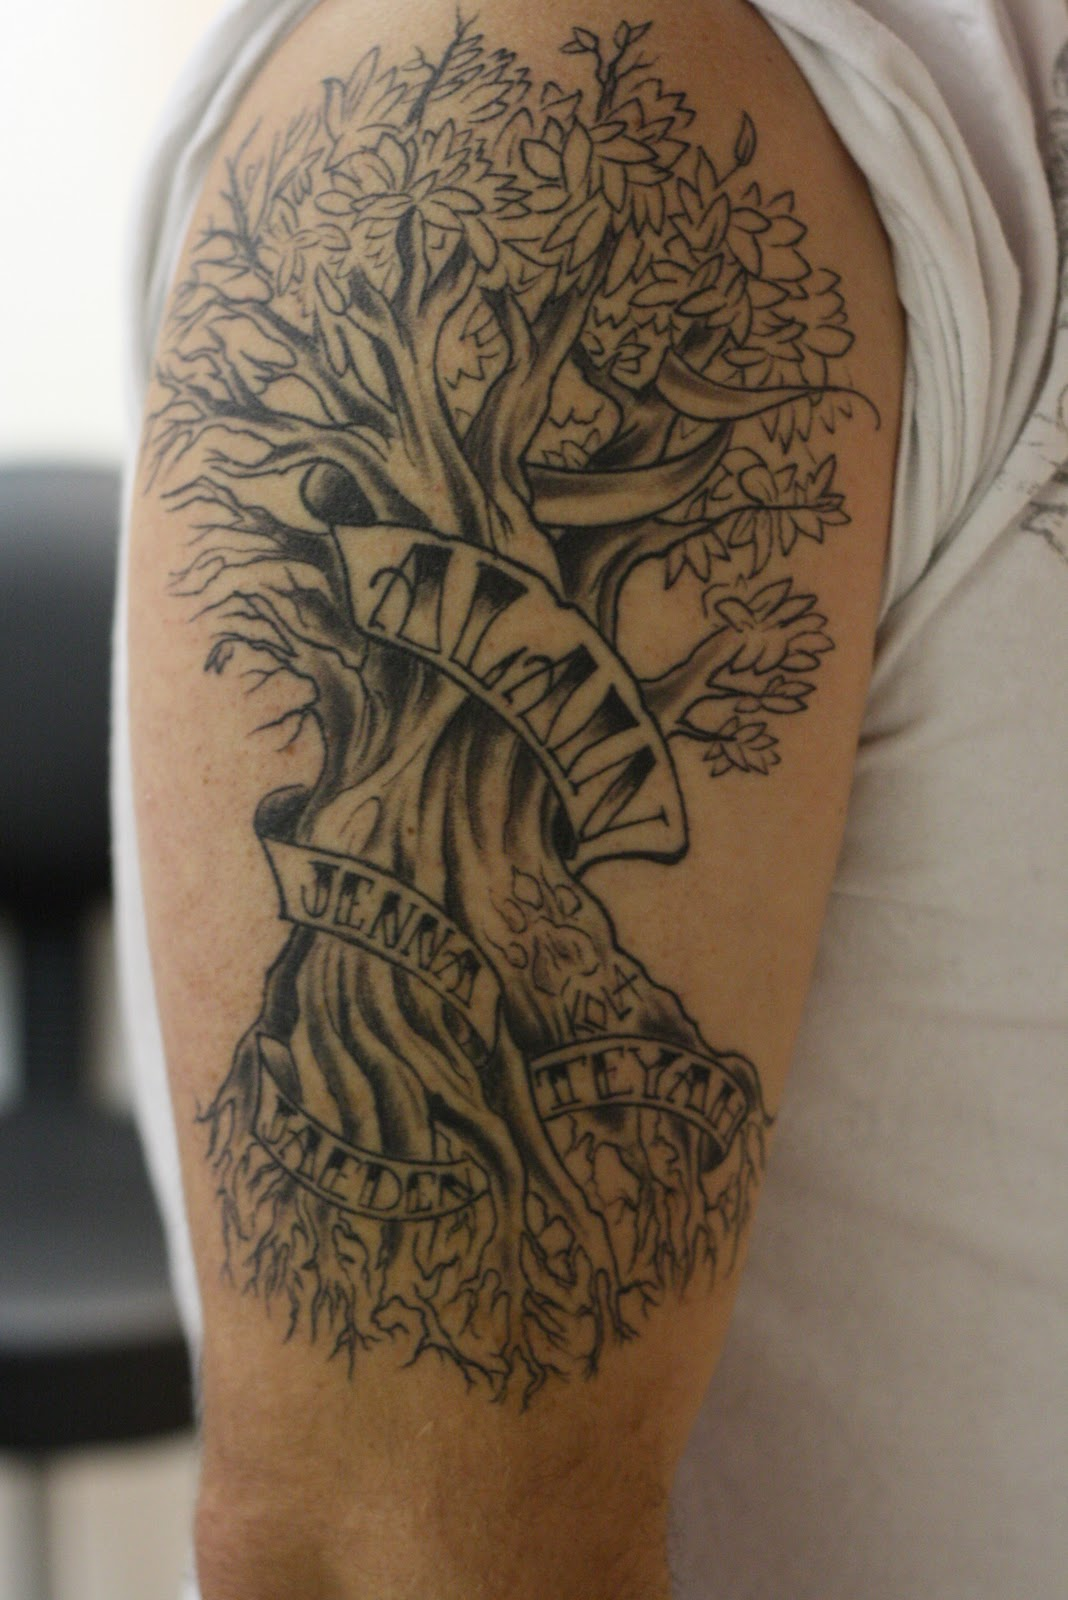 Corey Lyon Tattoos: Family tree